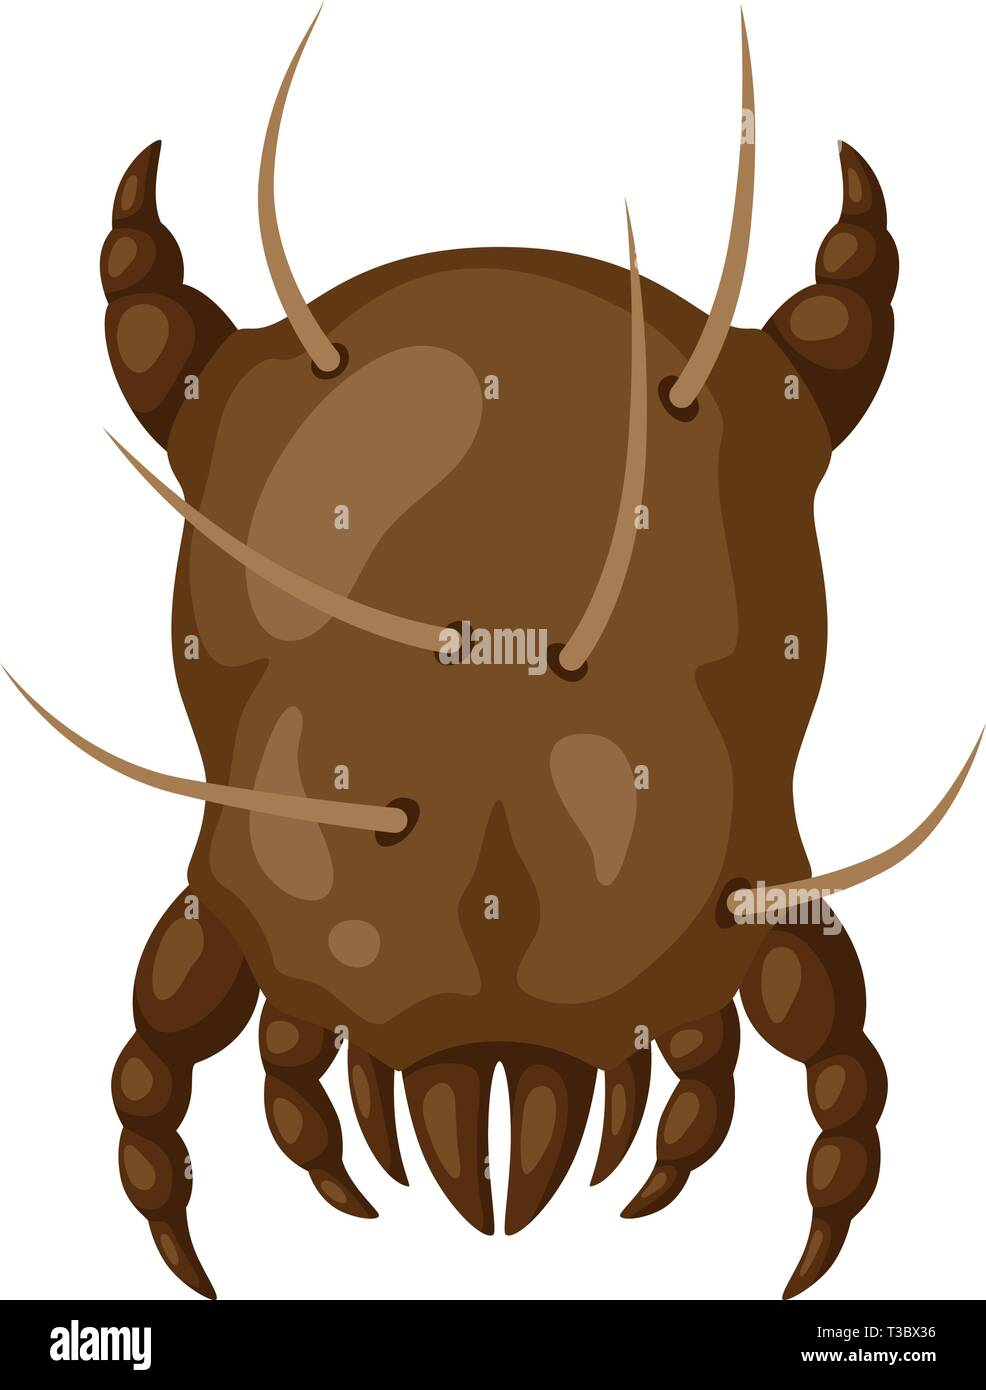 Icon dust mite insect. Illustration solated on white background. - Stock Image